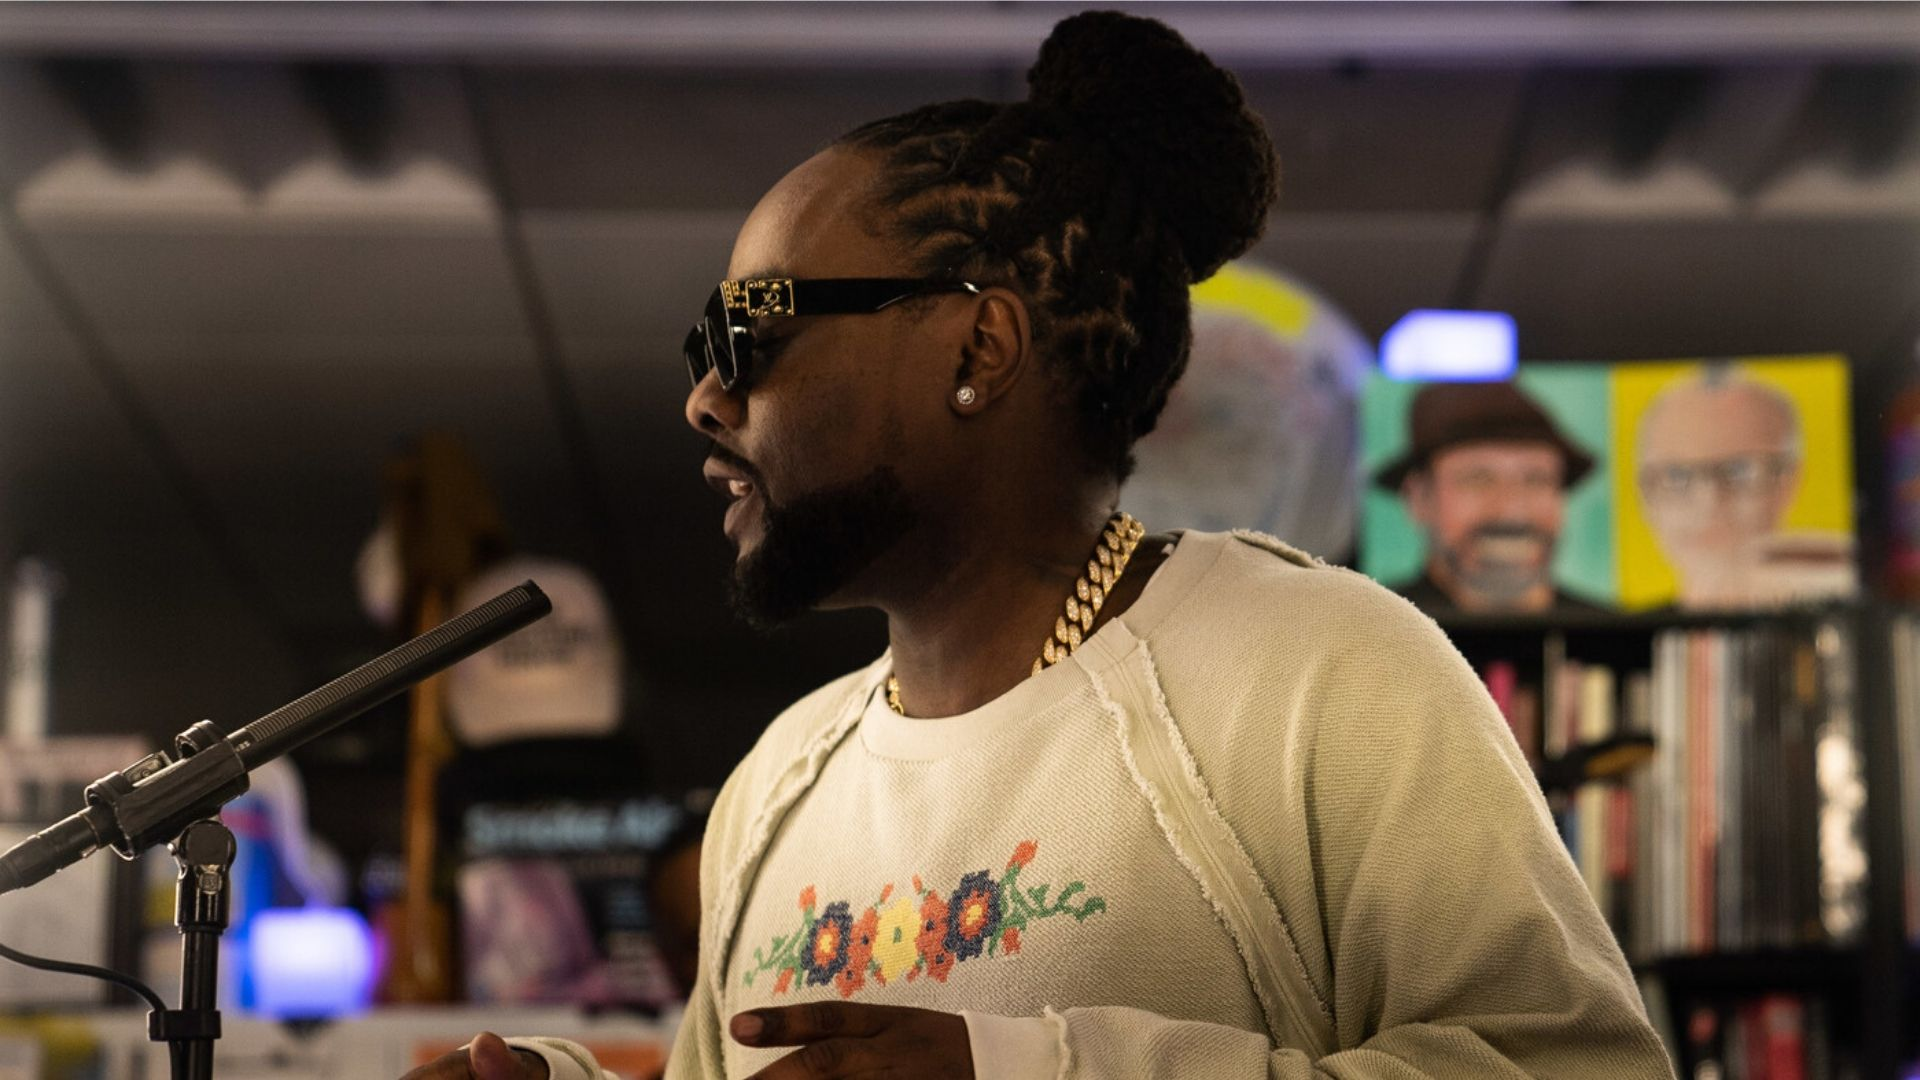 """A """"Tiny DesK"""" Concert performed by """"wale""""- Here are the details"""